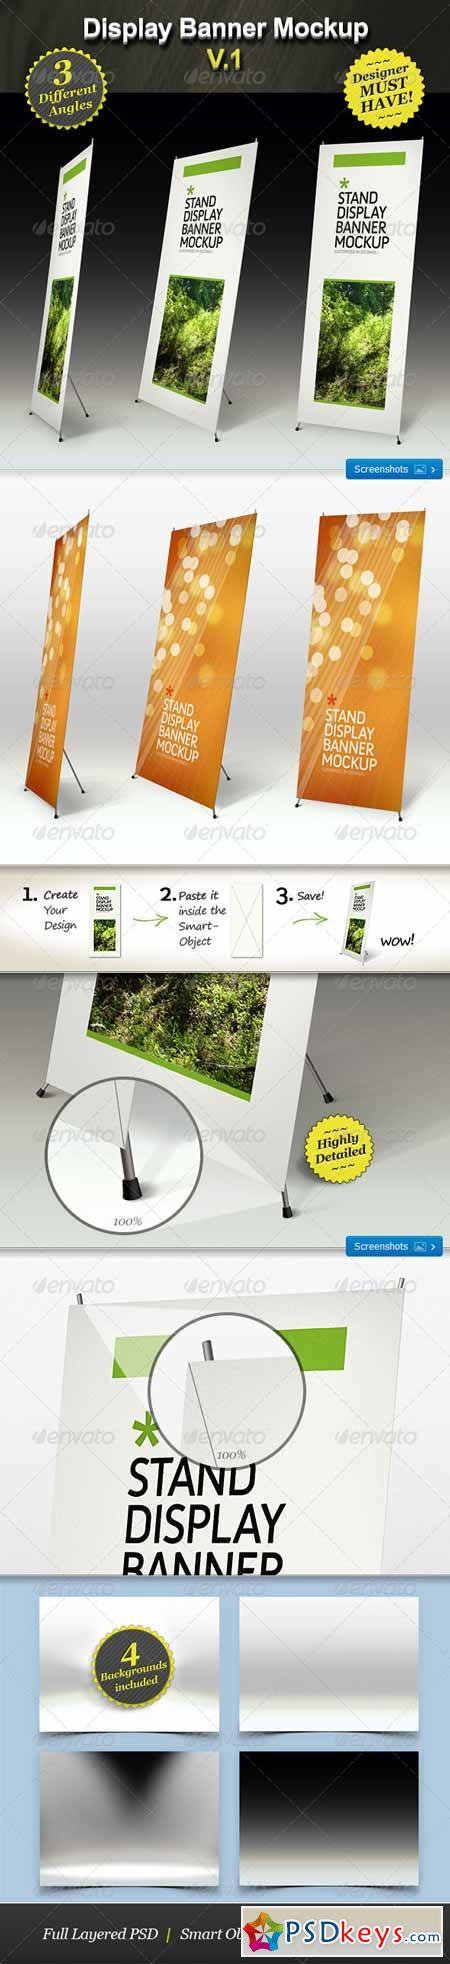 Stand Display Mockup - Roll-up Smart Template 168028